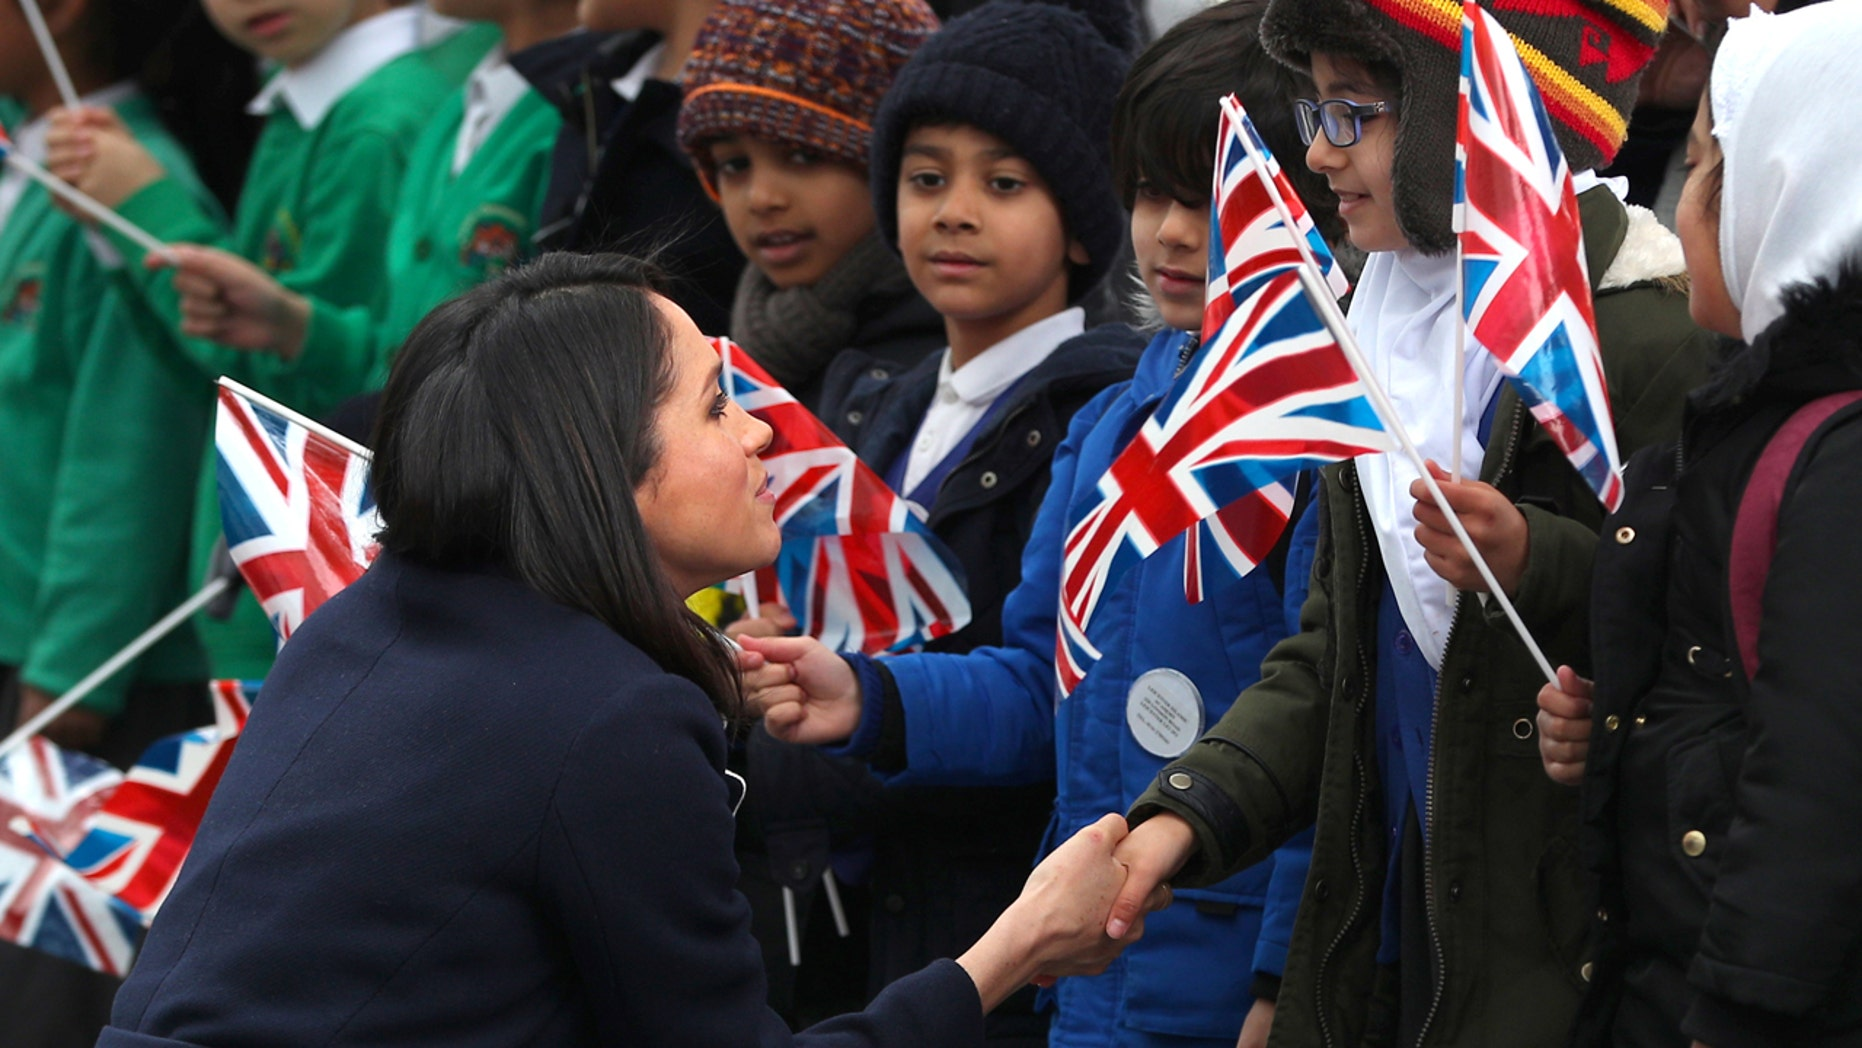 Meghan Markle talks to local school children during a walkabout with Britain's Prince Harry during a visit to Birmingham, Britain, March 8, 2018.